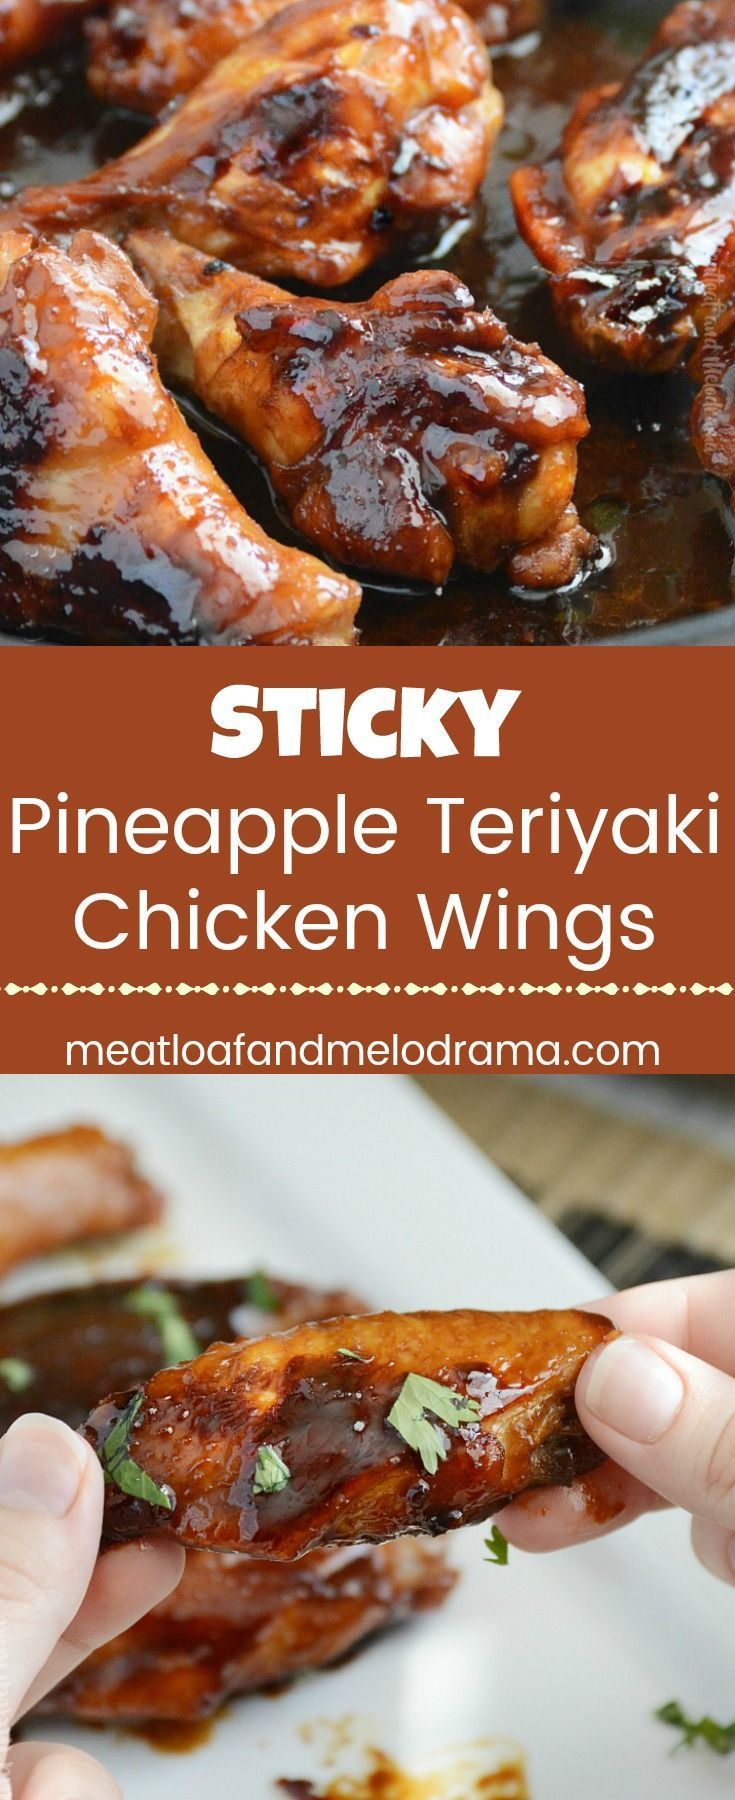 Sticky Pineapple Teriyaki Chicken Wings - Chicken wings marinated in a delicious sweet & savory pineapple teriyaki sauce made with soy, ginger, garlic, pineapple and beer! Perfect for game day parties or an easy dinner! from Meatloaf and Melodrama #gameda